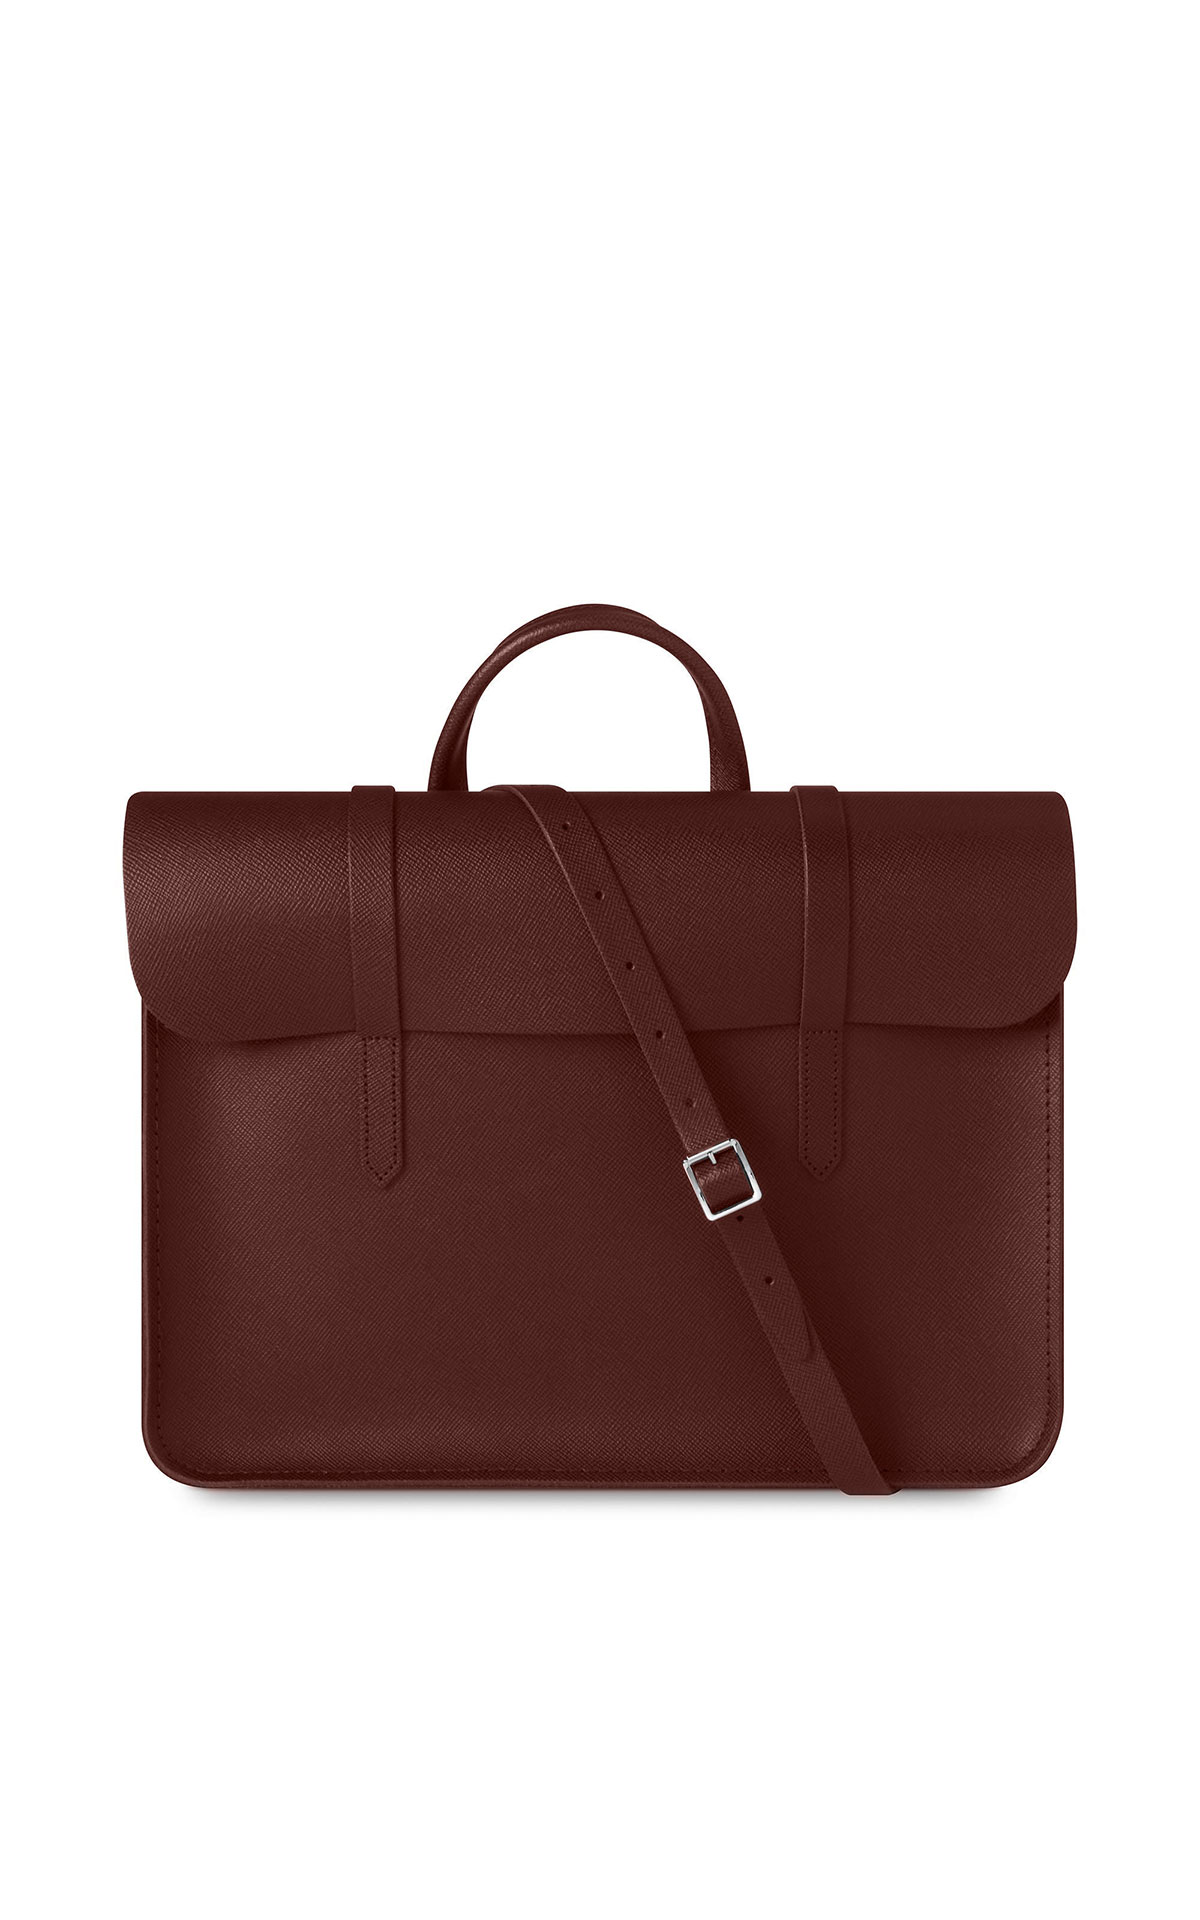 The Cambridge Satchel Company Music case oxblood from Bicester Village